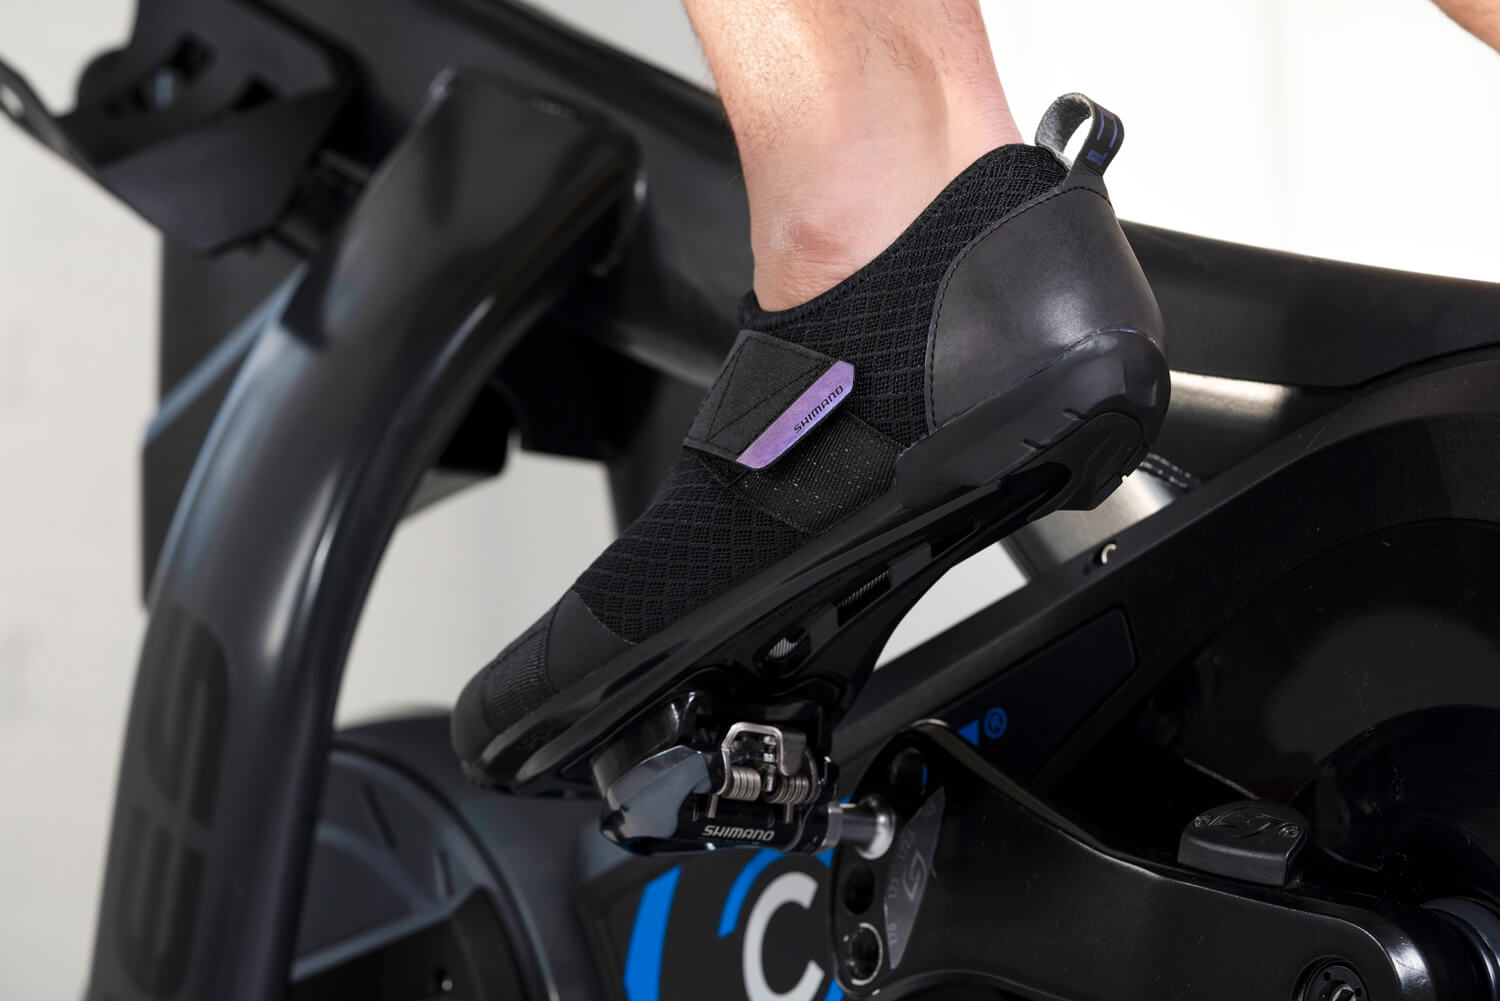 Shimano's IC1 Indoor Cycling shoe on a Stages stationary bike